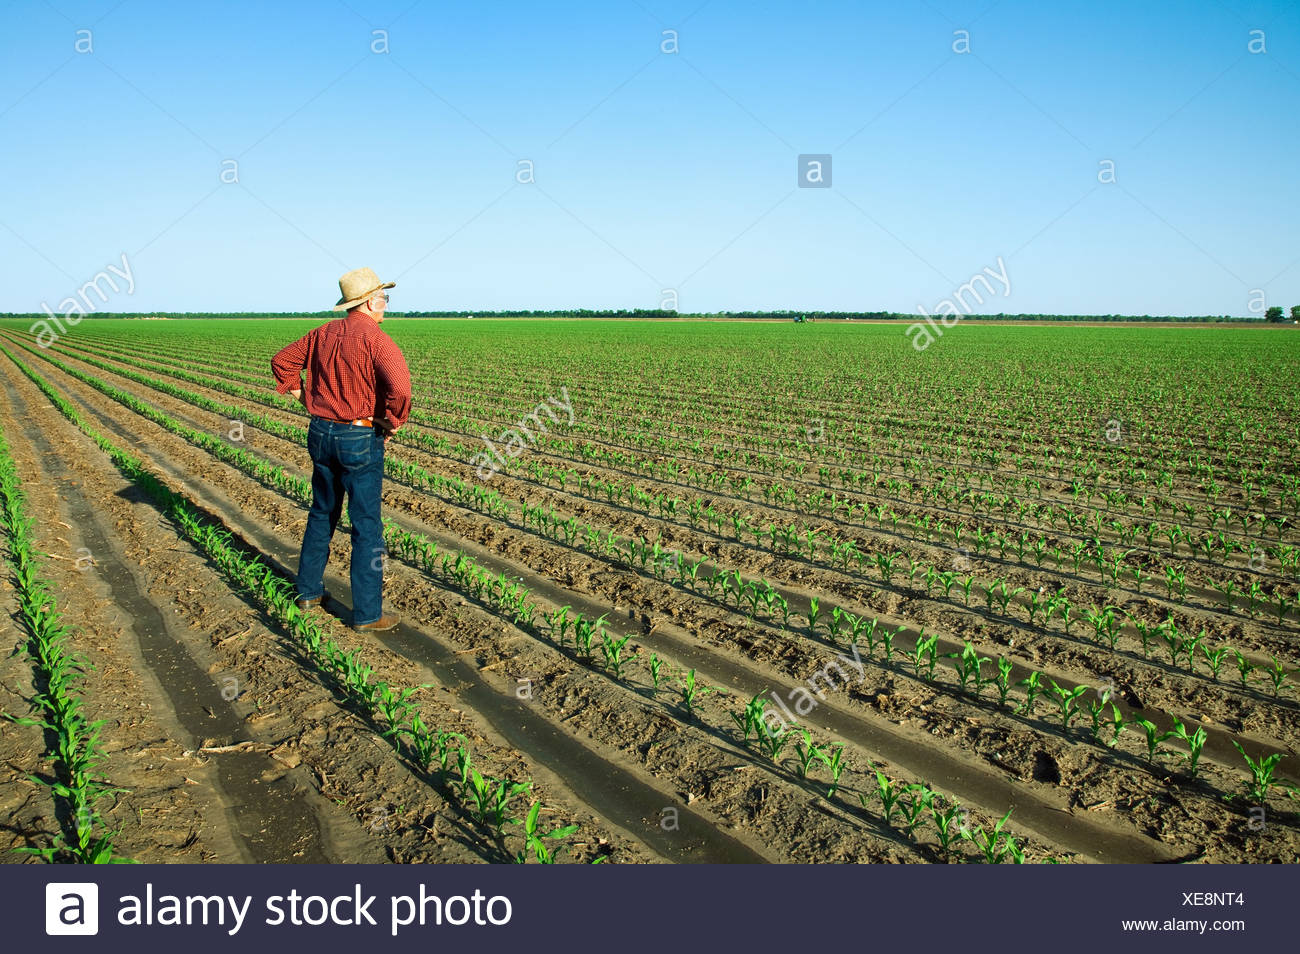 Agriculture - A farmer (grower) examines his field of early growth grain corn plants at the four leaf stage / England, Arkansas. - Stock Image